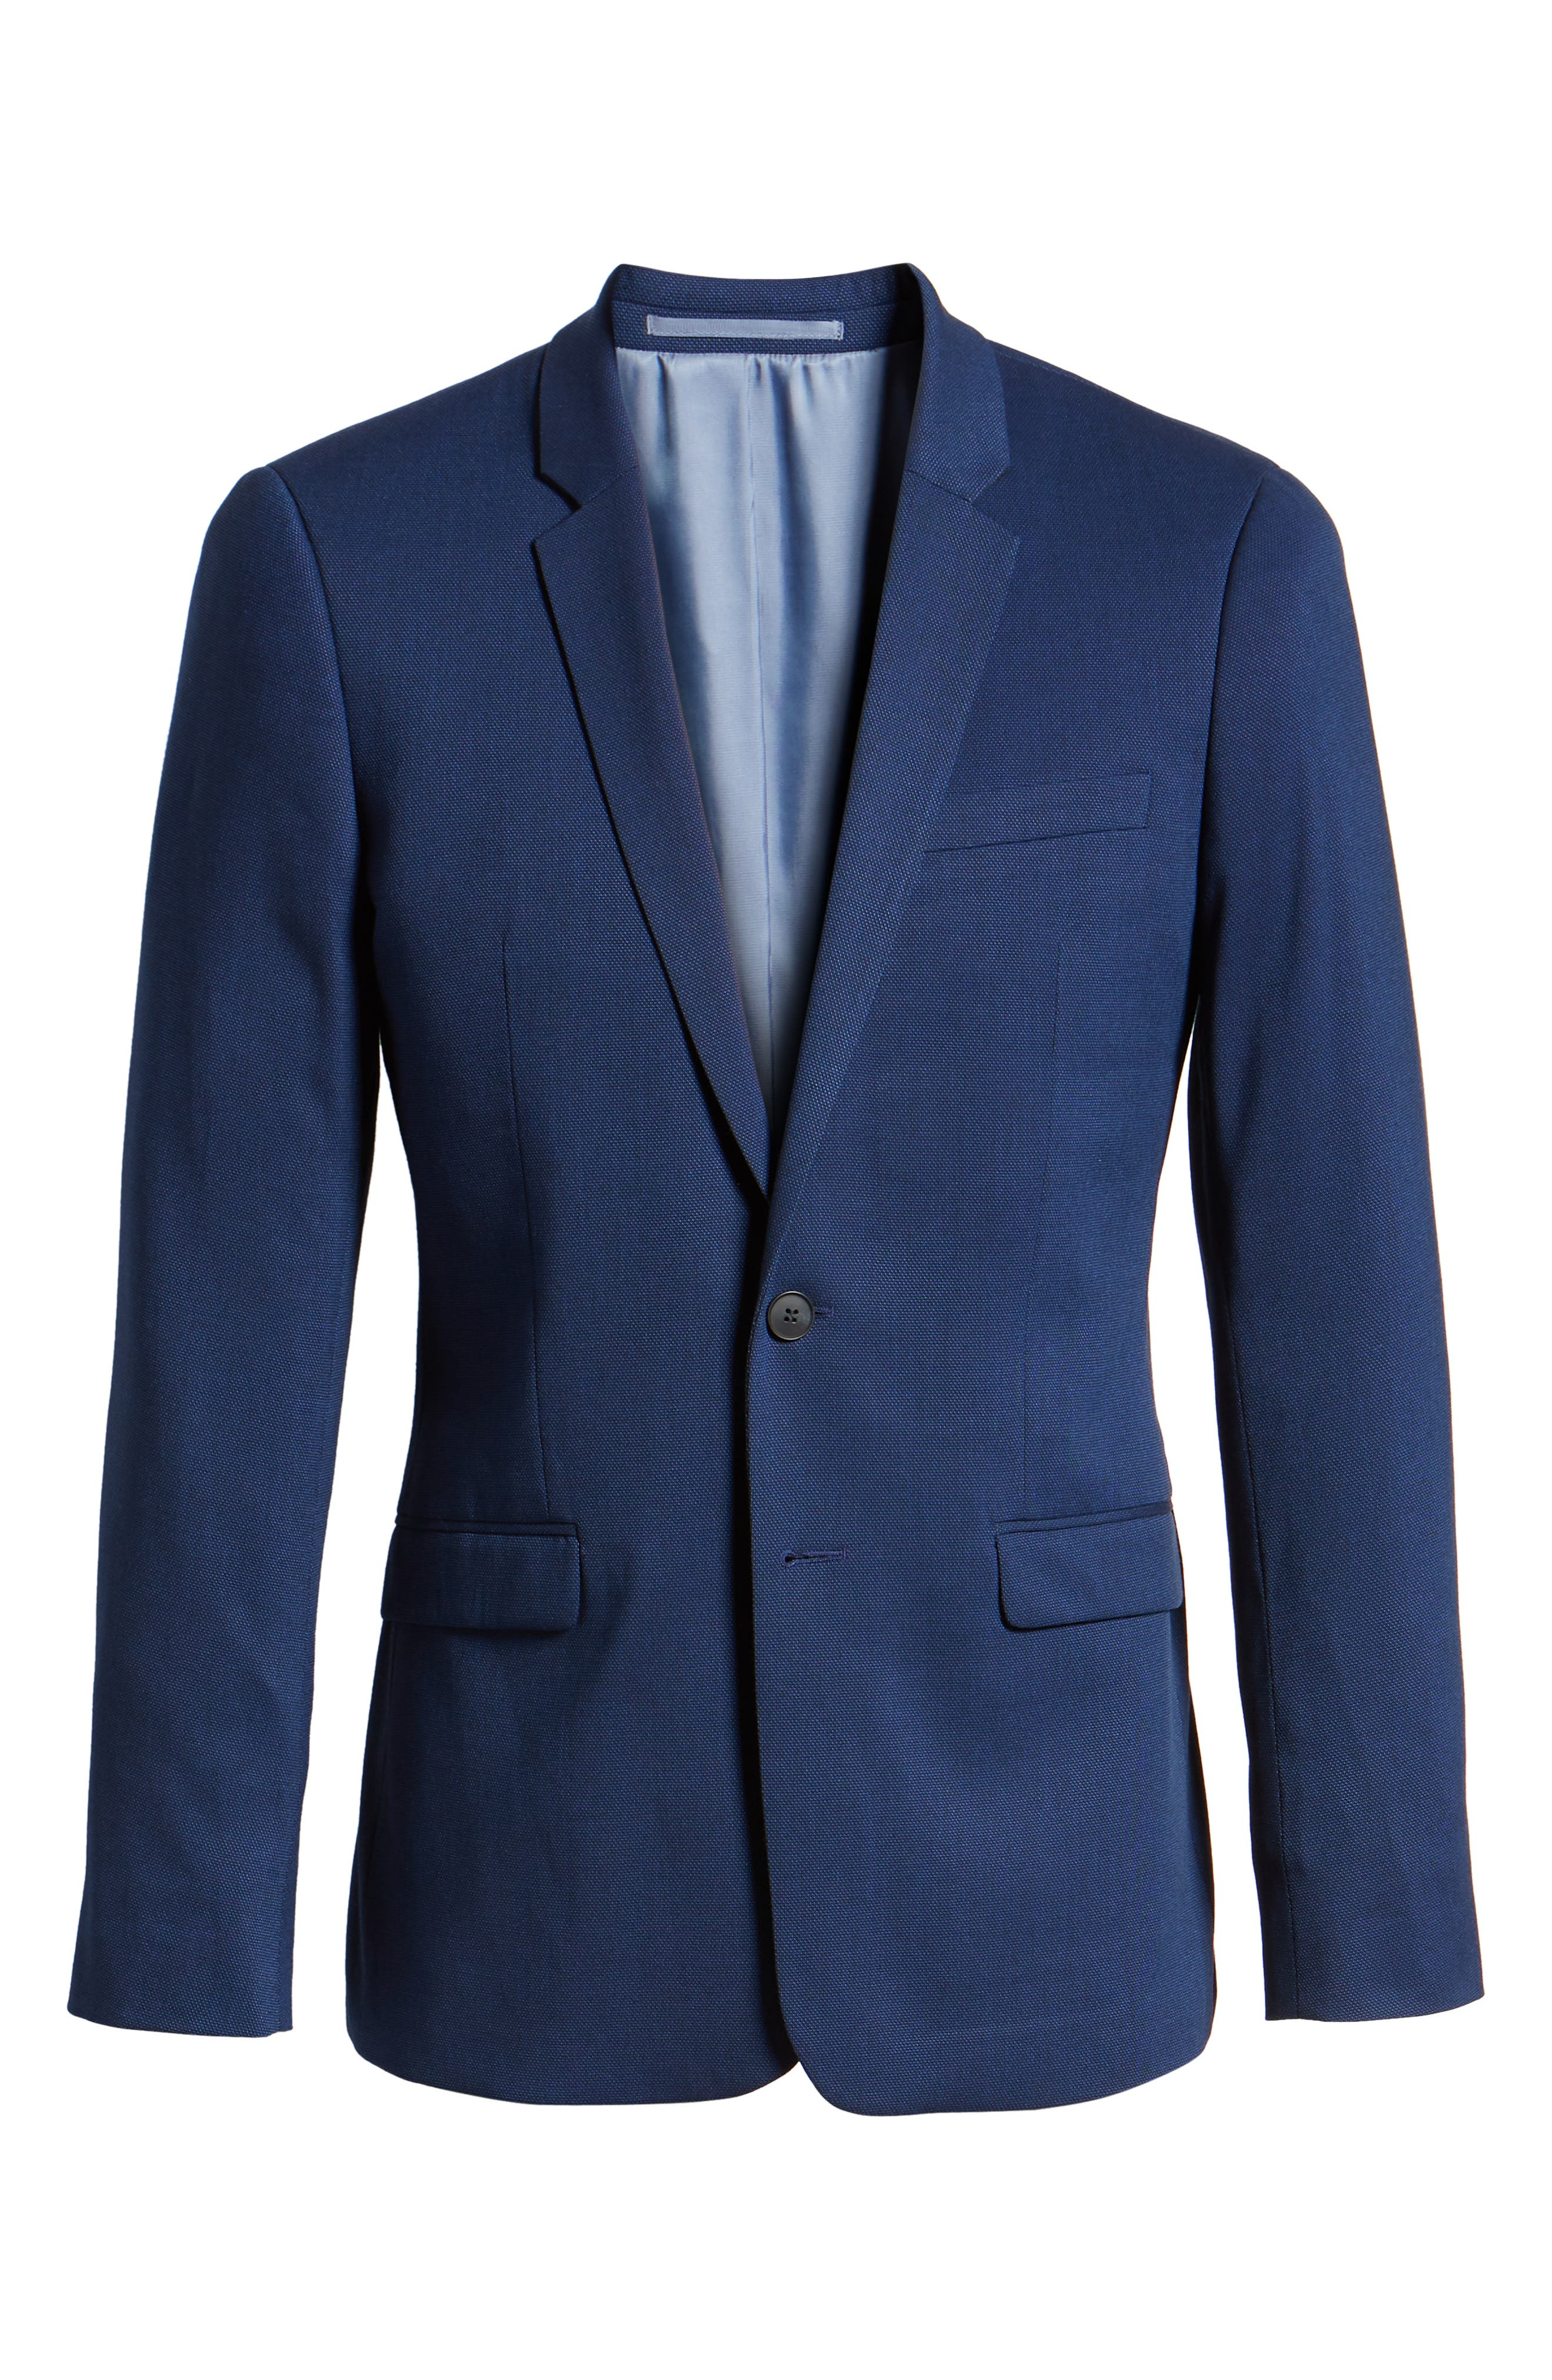 TOPMAN, Skinny Fit Suit Jacket, Alternate thumbnail 6, color, BLUE